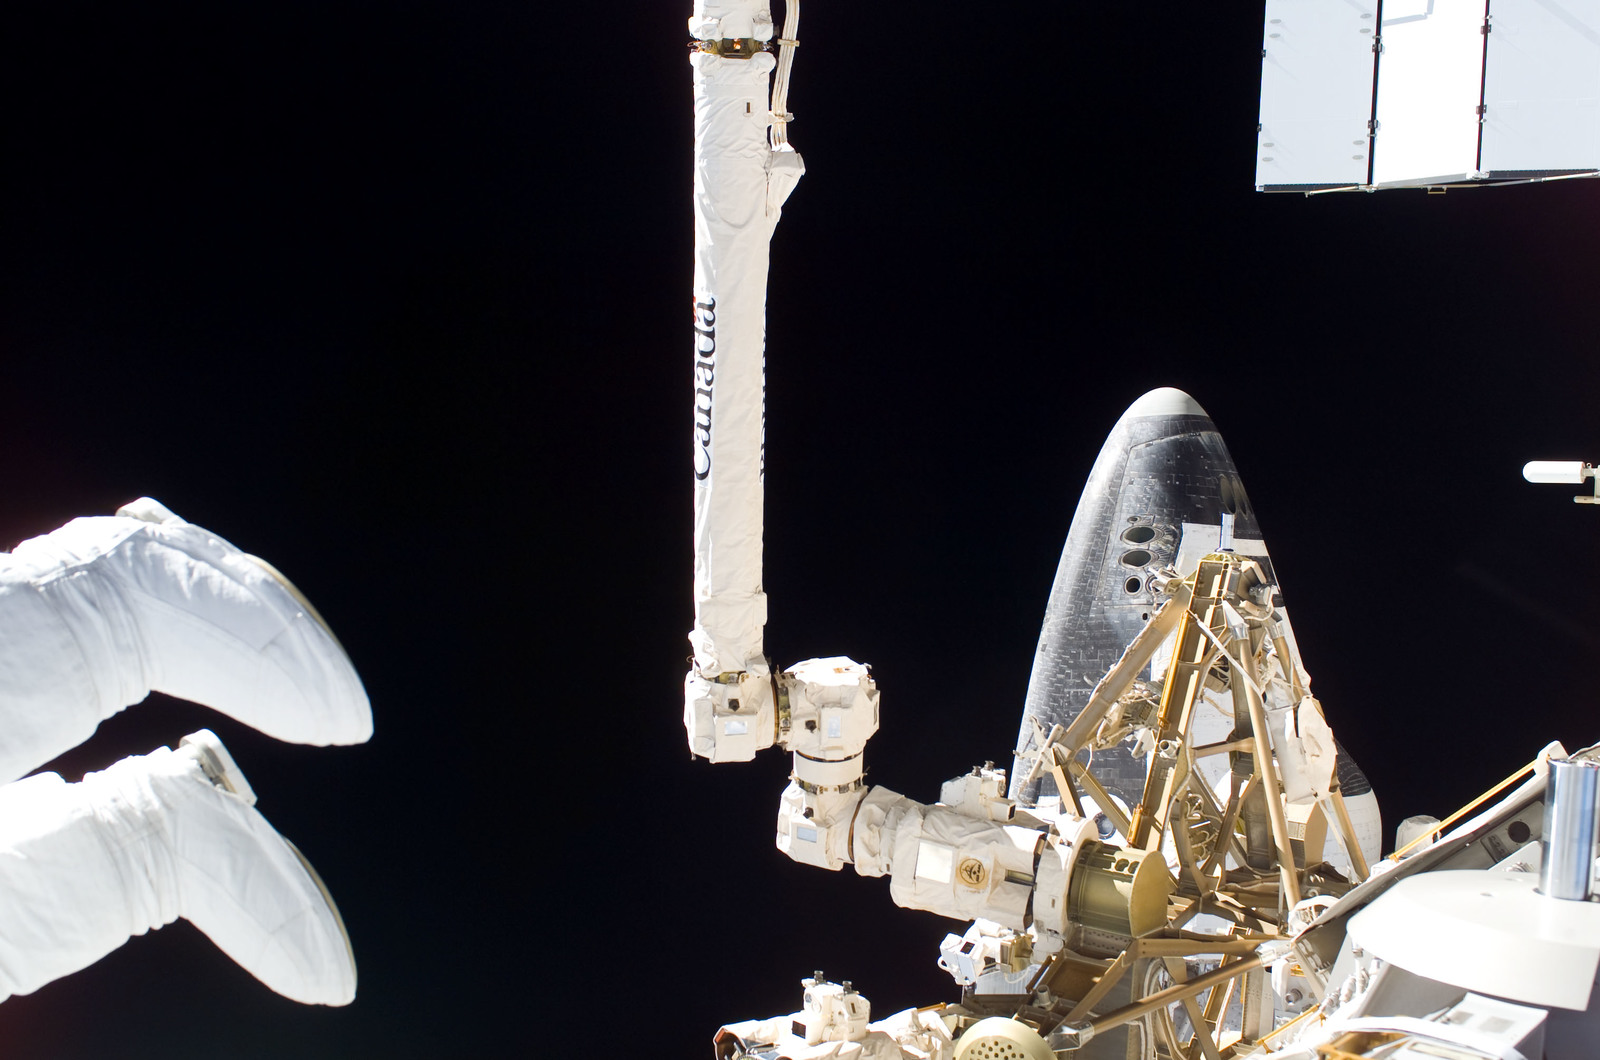 S115E05742 - STS-115 - STS-115 Space Shuttle Atlantis docked on the ISS during Joint Operations